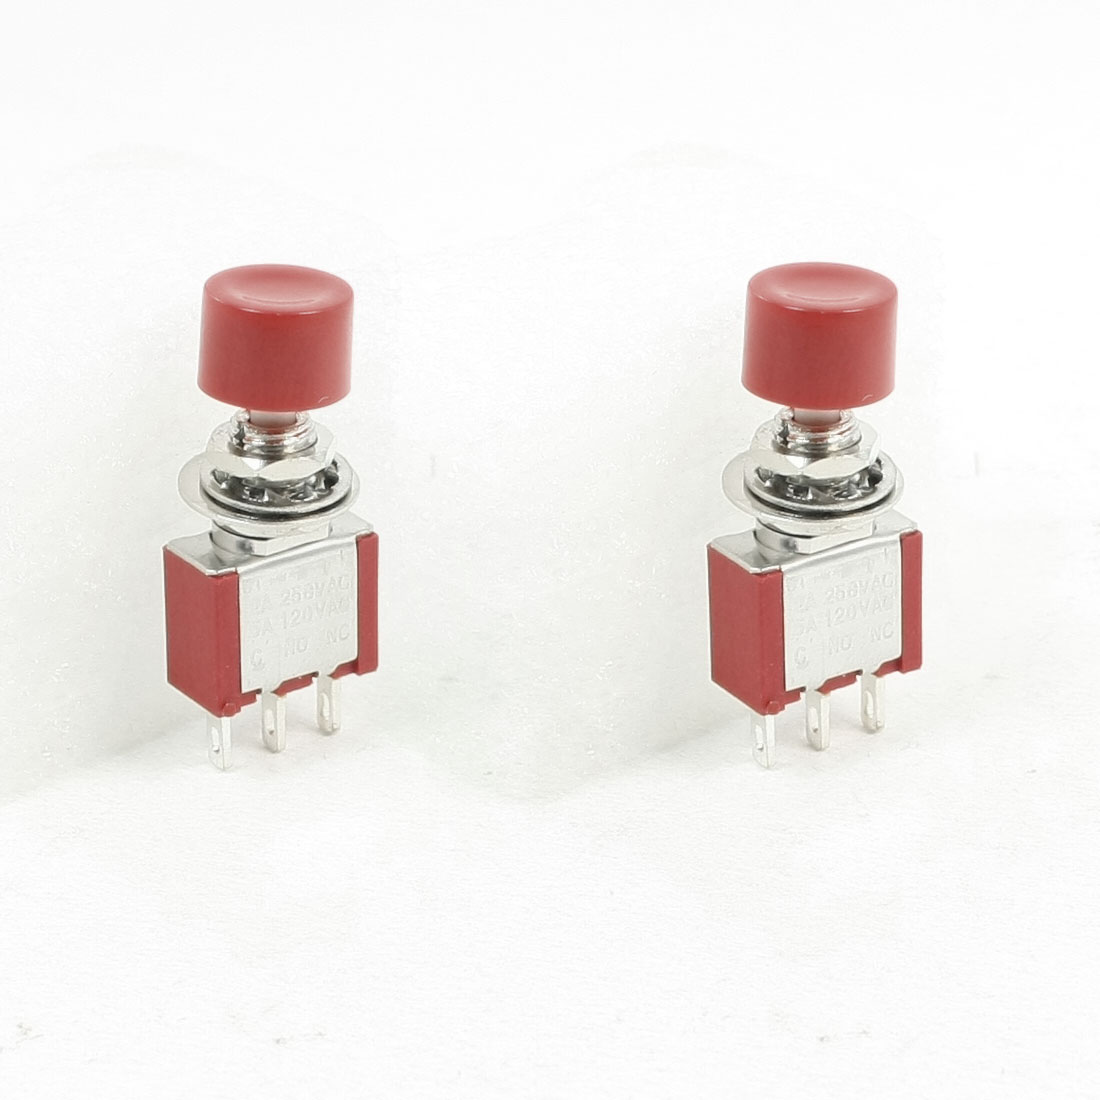 AC 250V 2A 6A AC 250V N/O Normally Open Momentary Pushbutton Switch Red 2 PCS